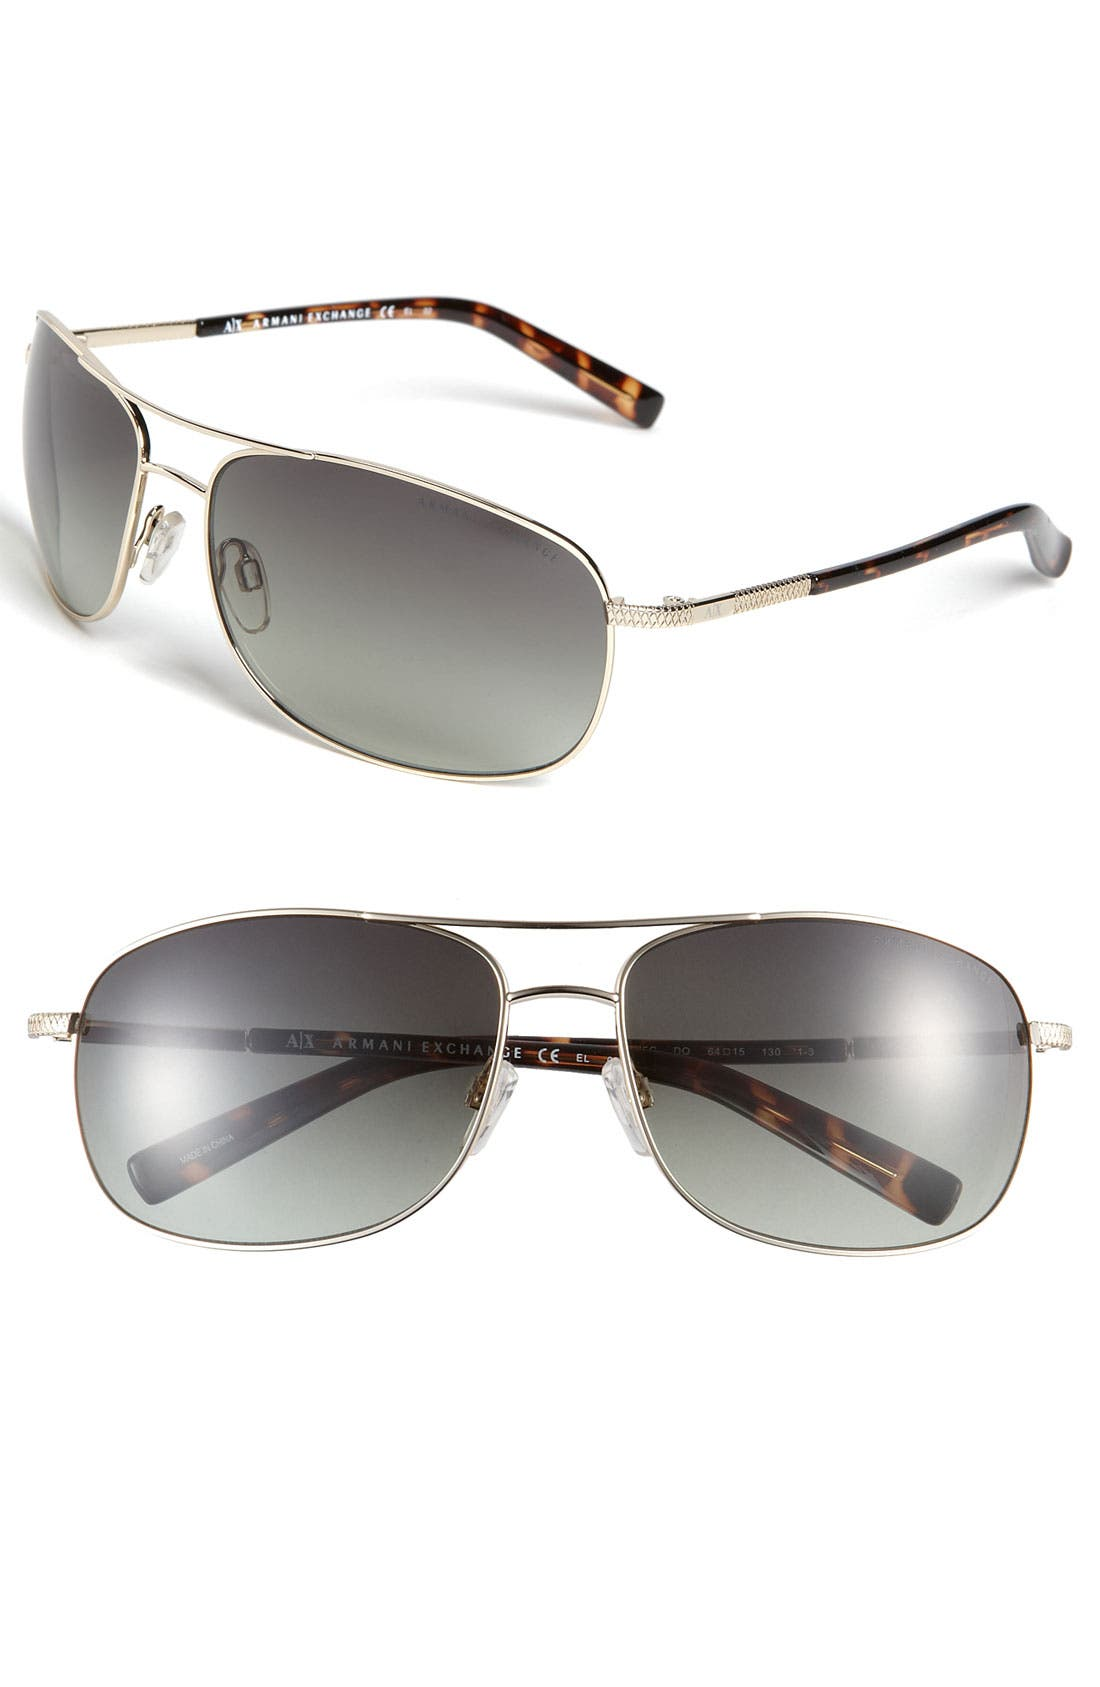 Alternate Image 1 Selected - AX Armani Exchange Metal Navigator Sunglasses